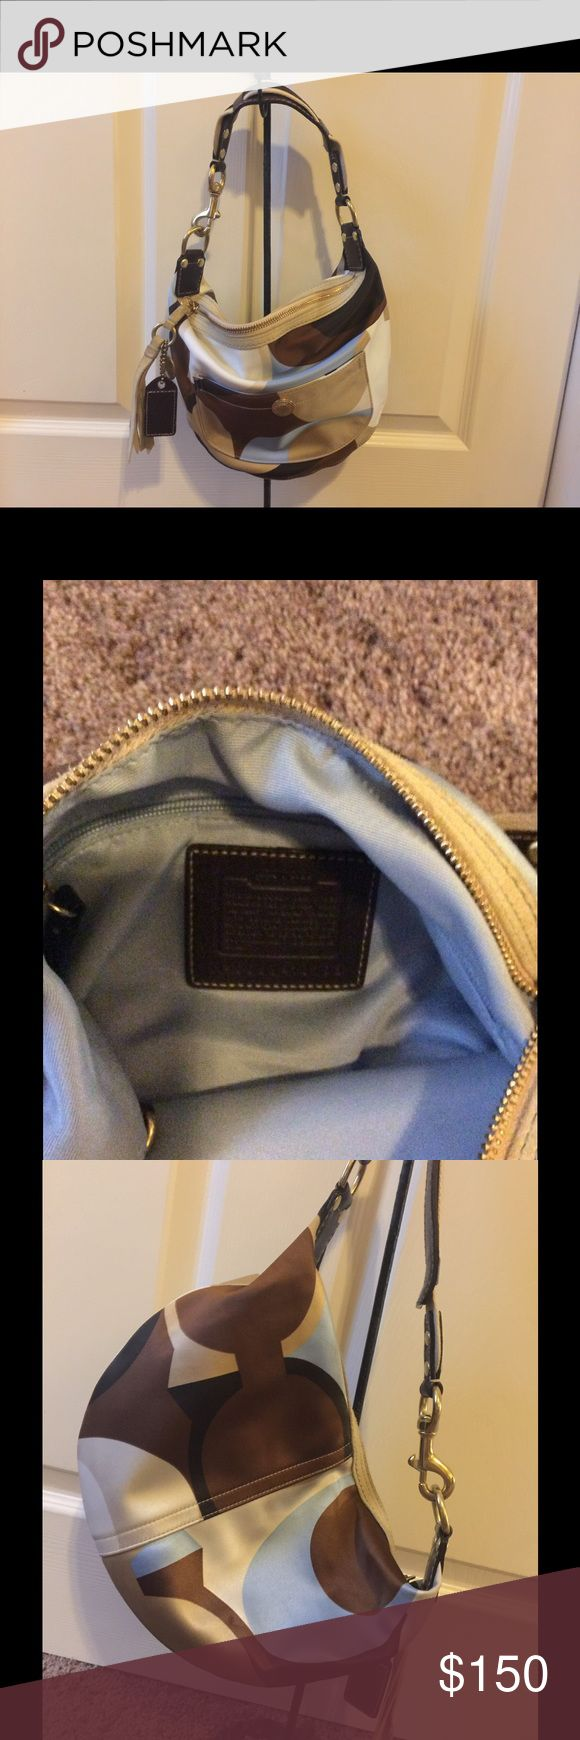 Coach hobo bag. Small hobo tan ,brown and blue pattern. Very good condition Coach Bags Hobos